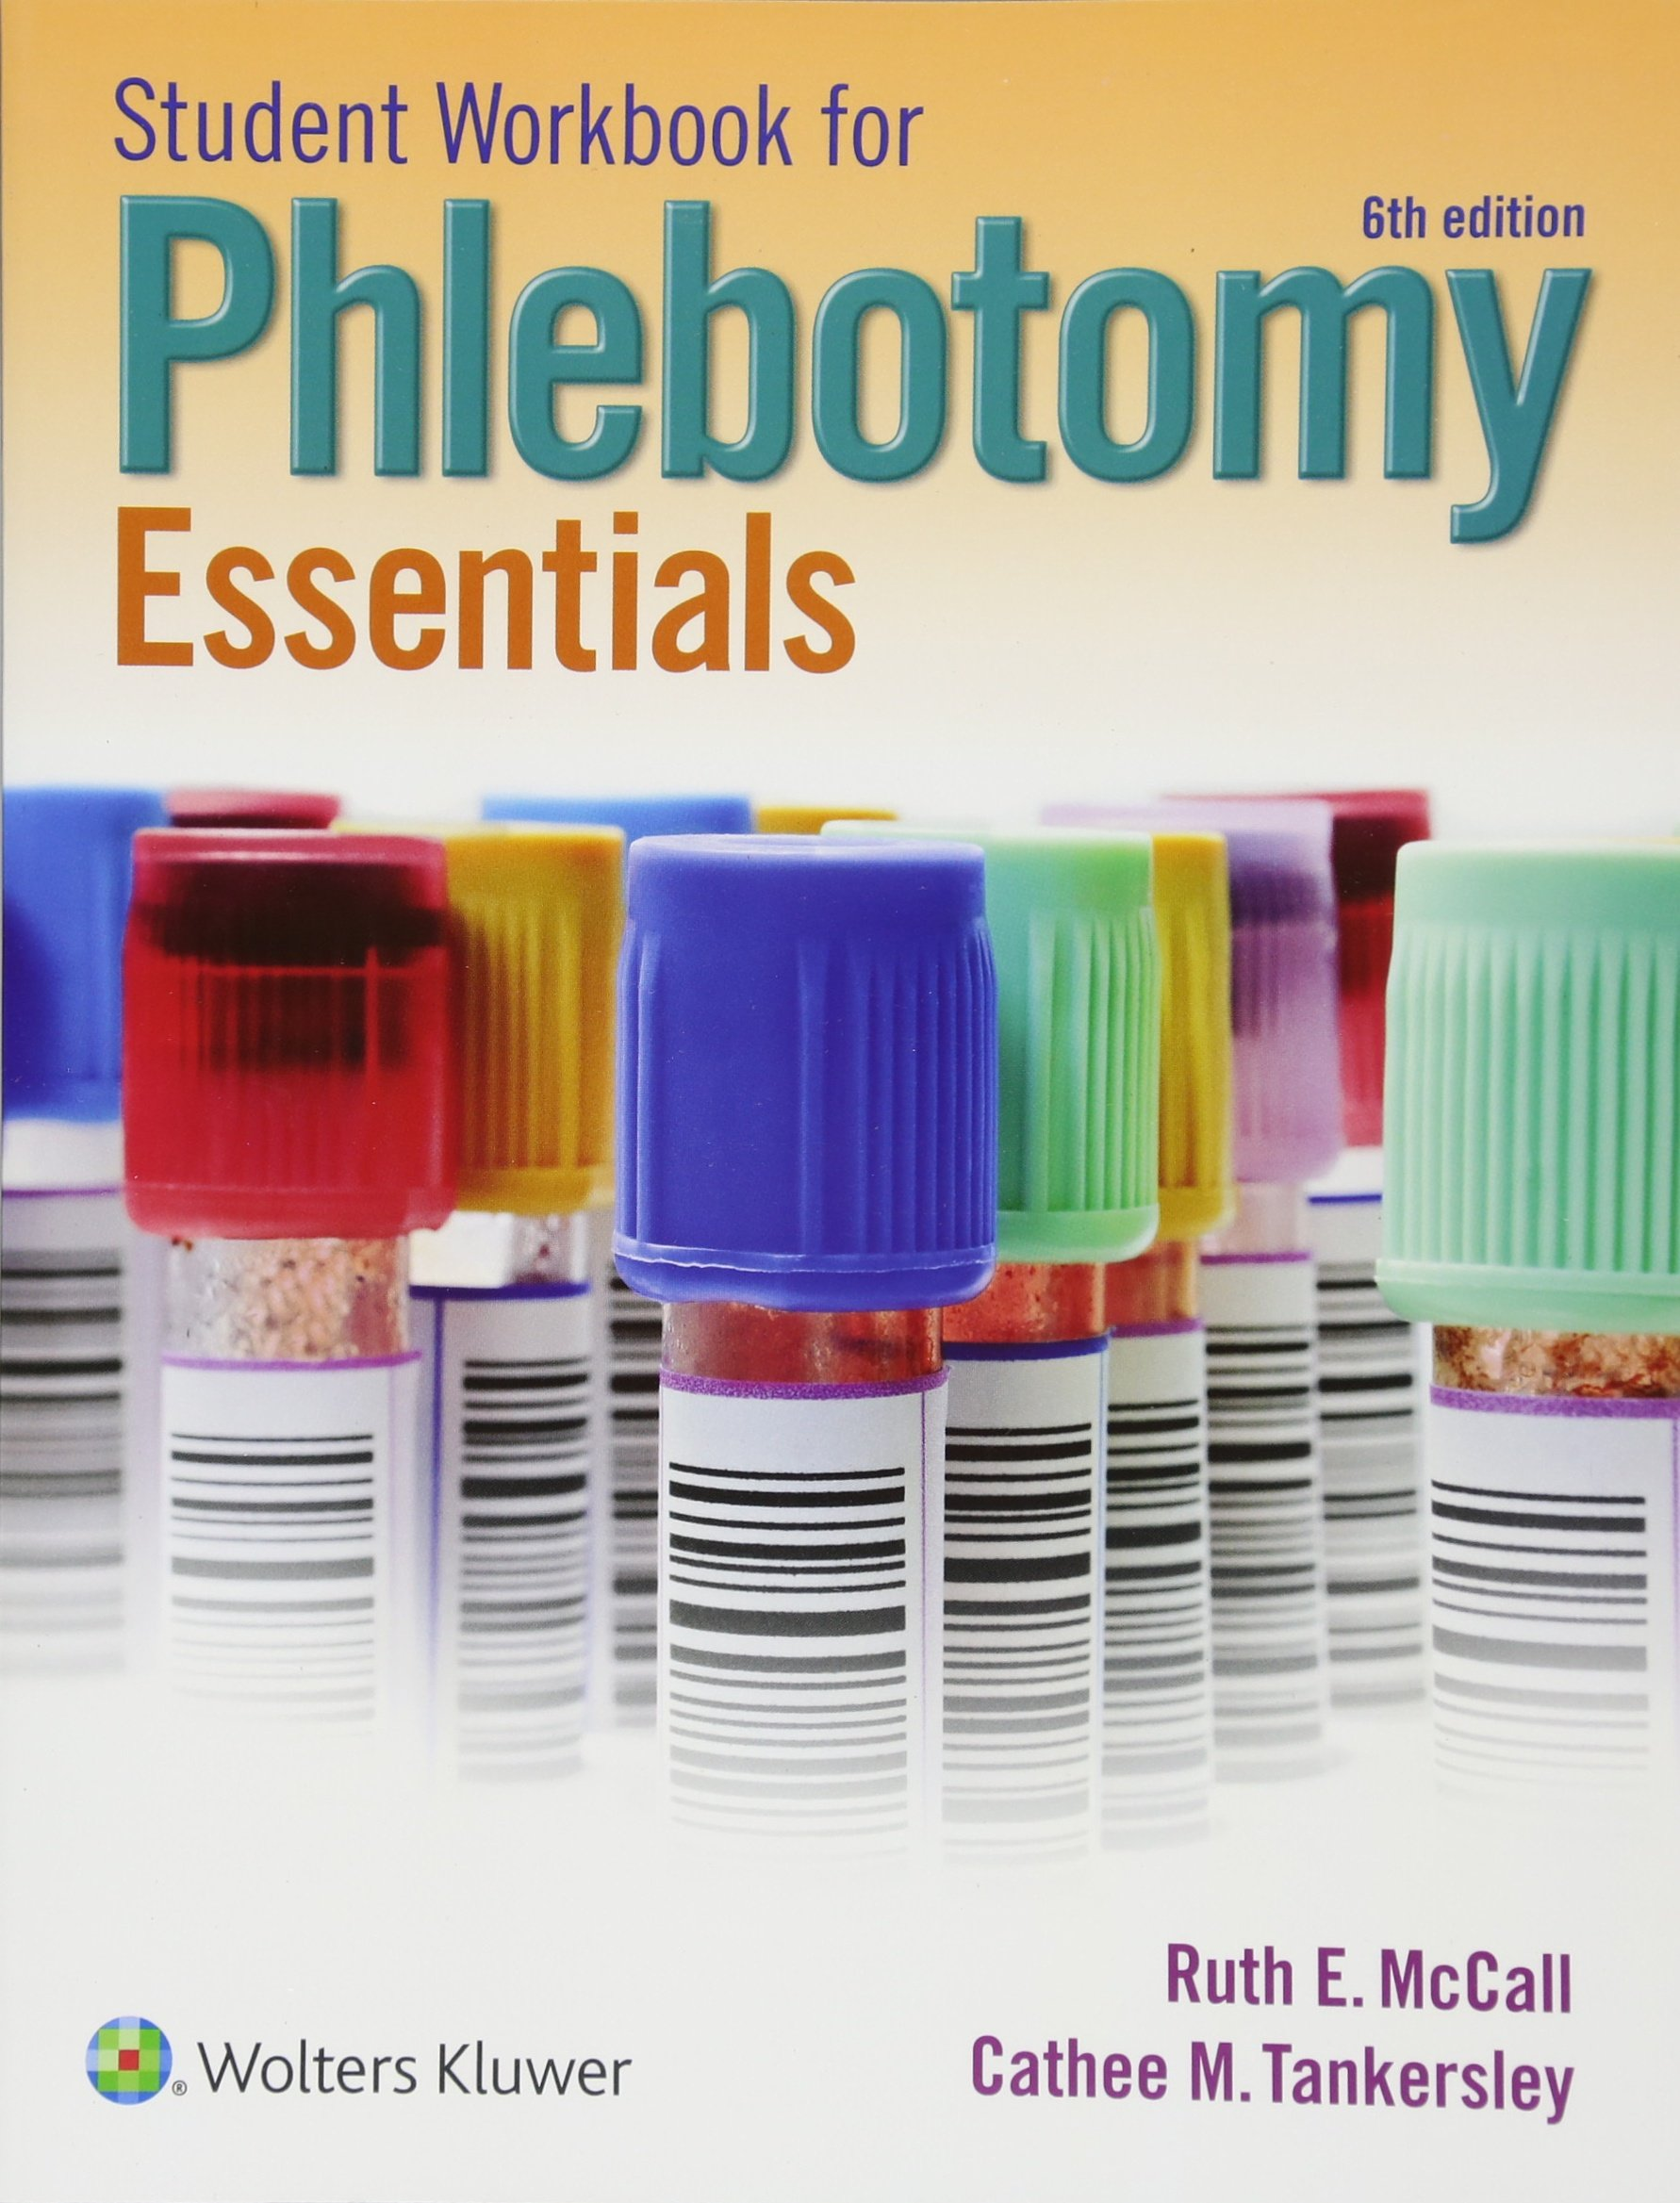 Student Workbook For Phlebotomy Essentials Sixth Edition